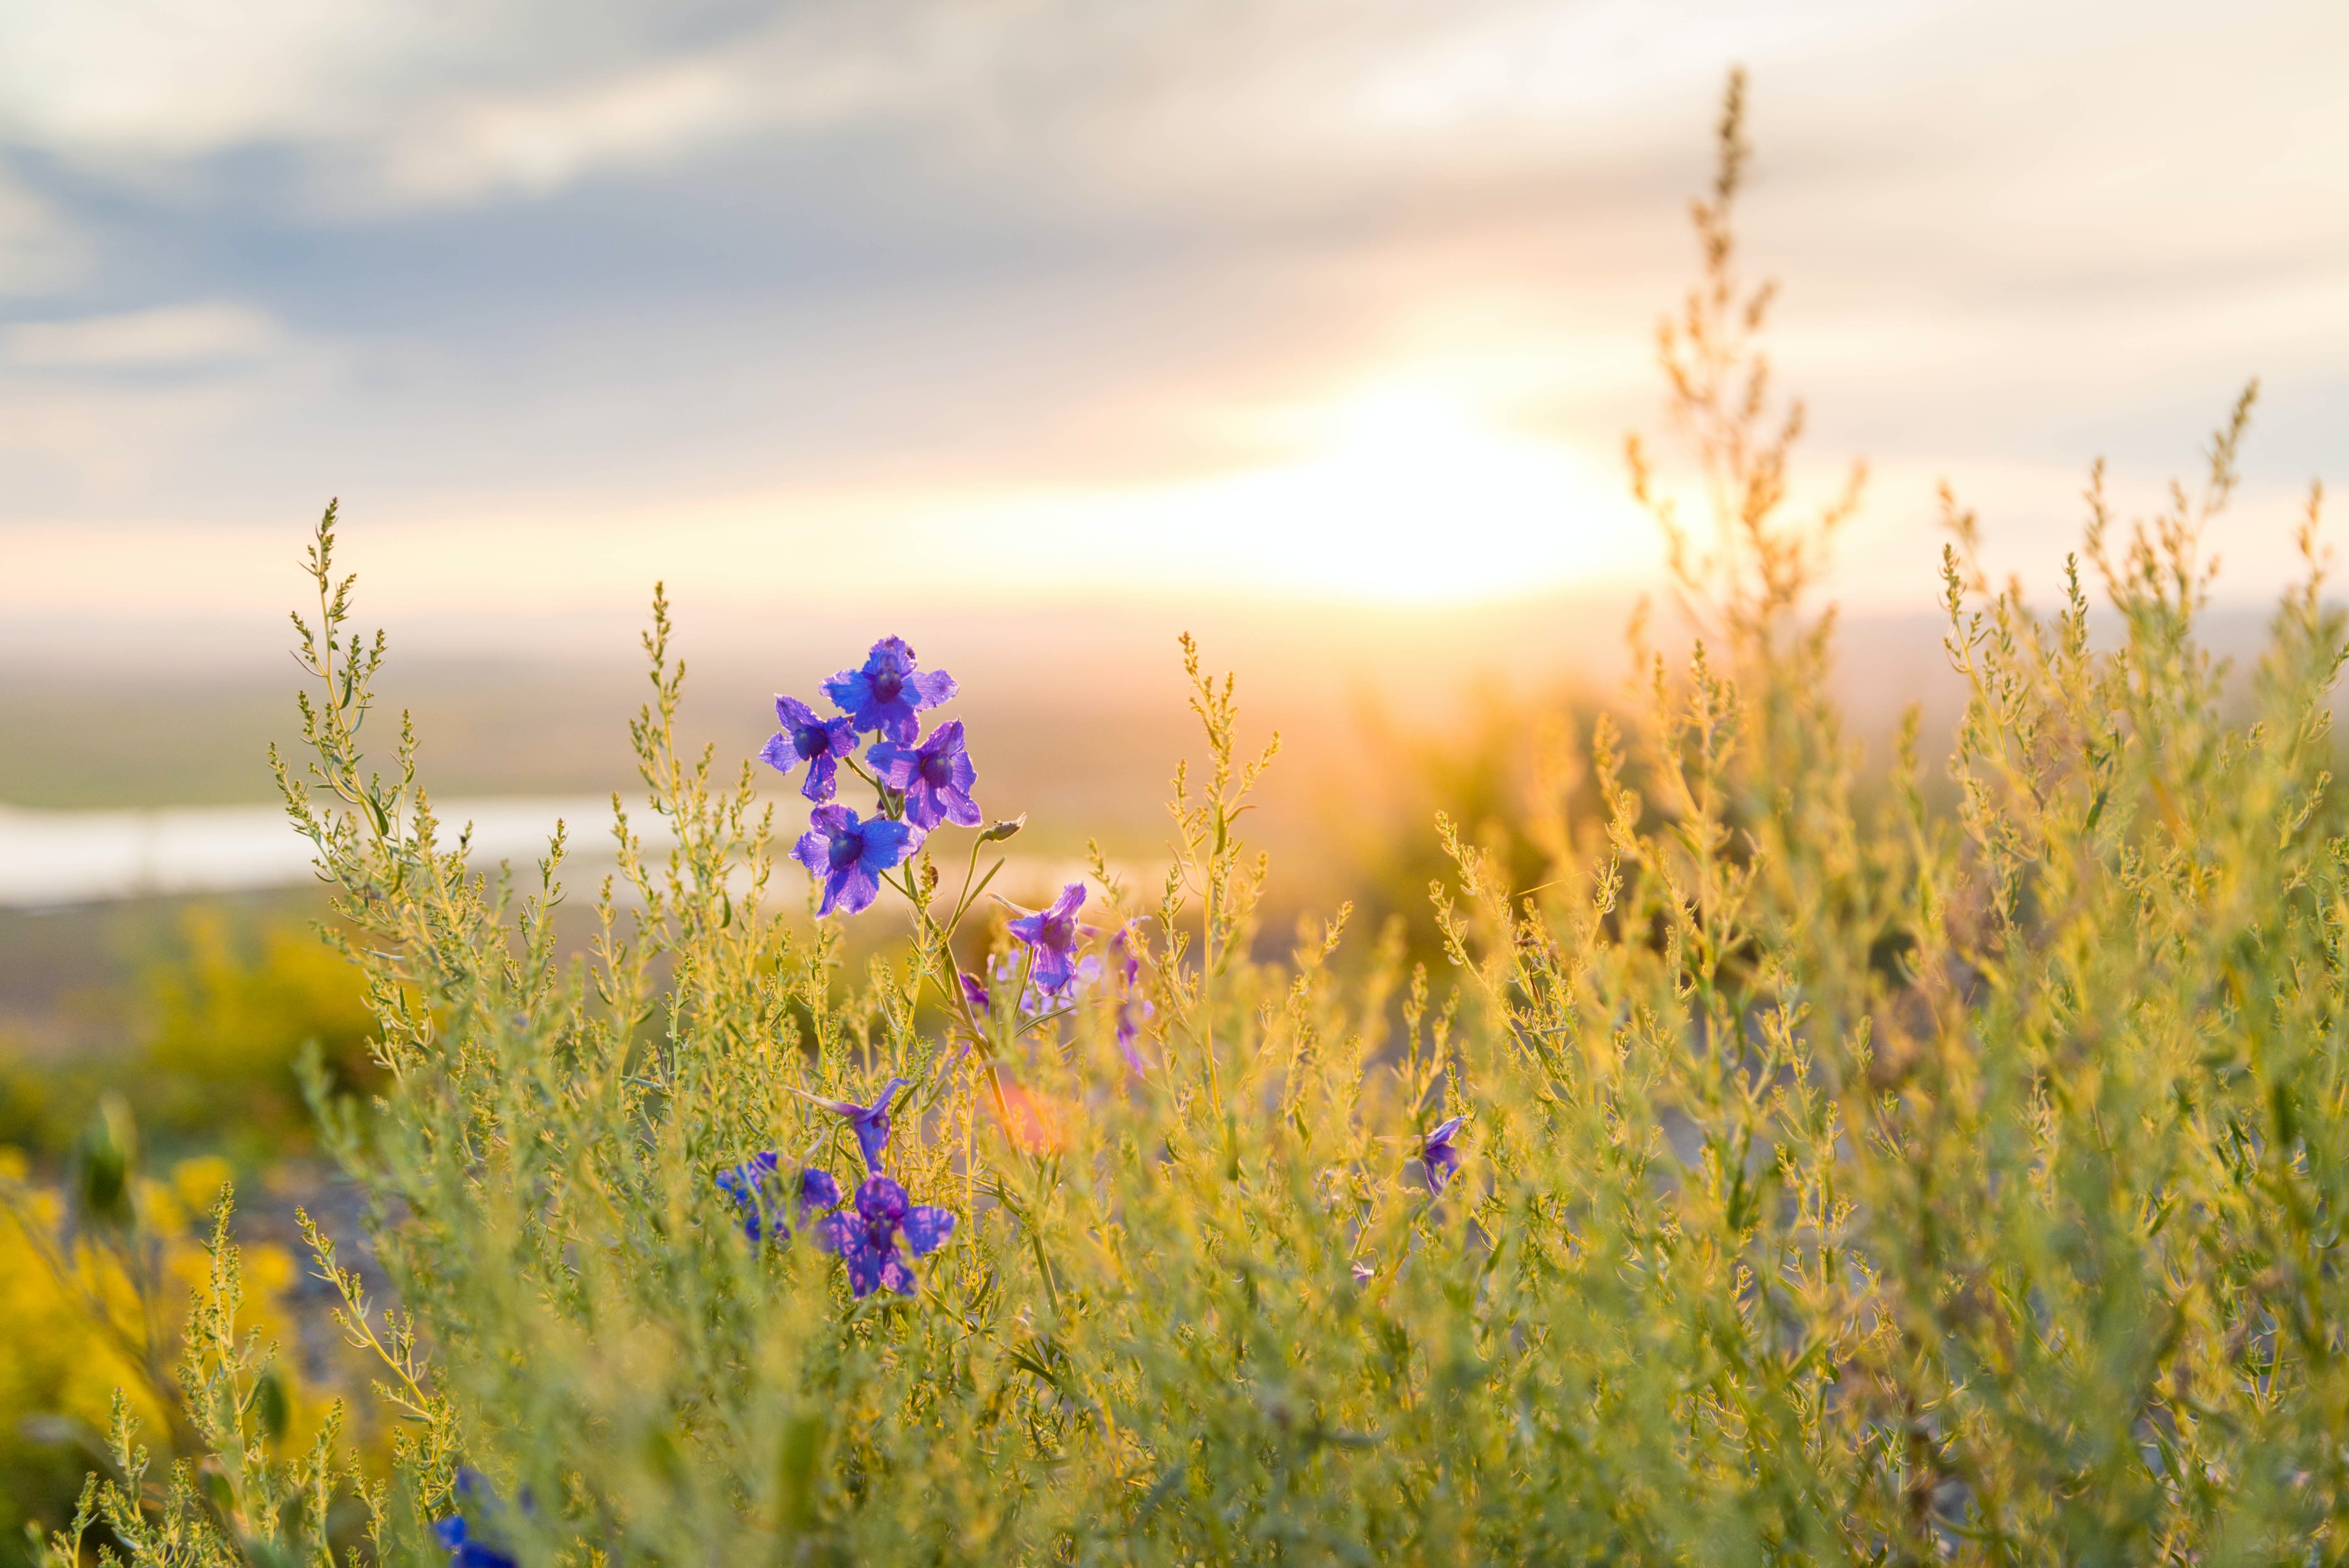 A plant with purple flowers in tall grass during sunset